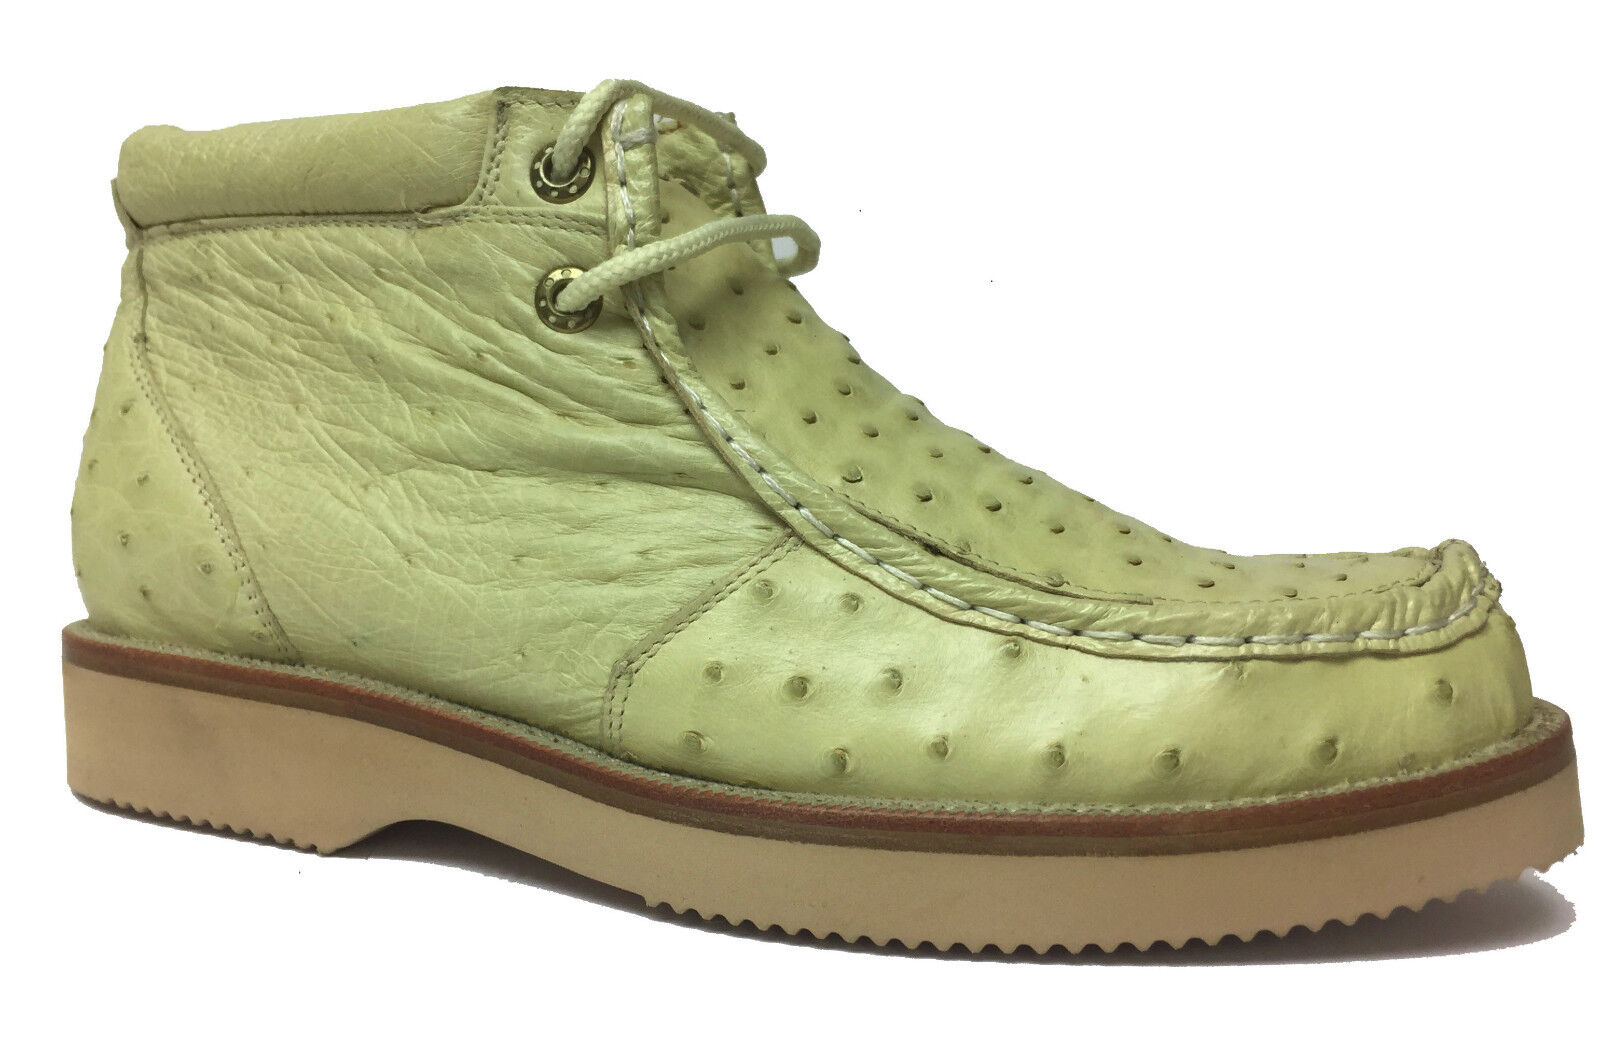 New Off White Full Real Ostrich Quill Crocodile Shoes Sneakers Western Boots